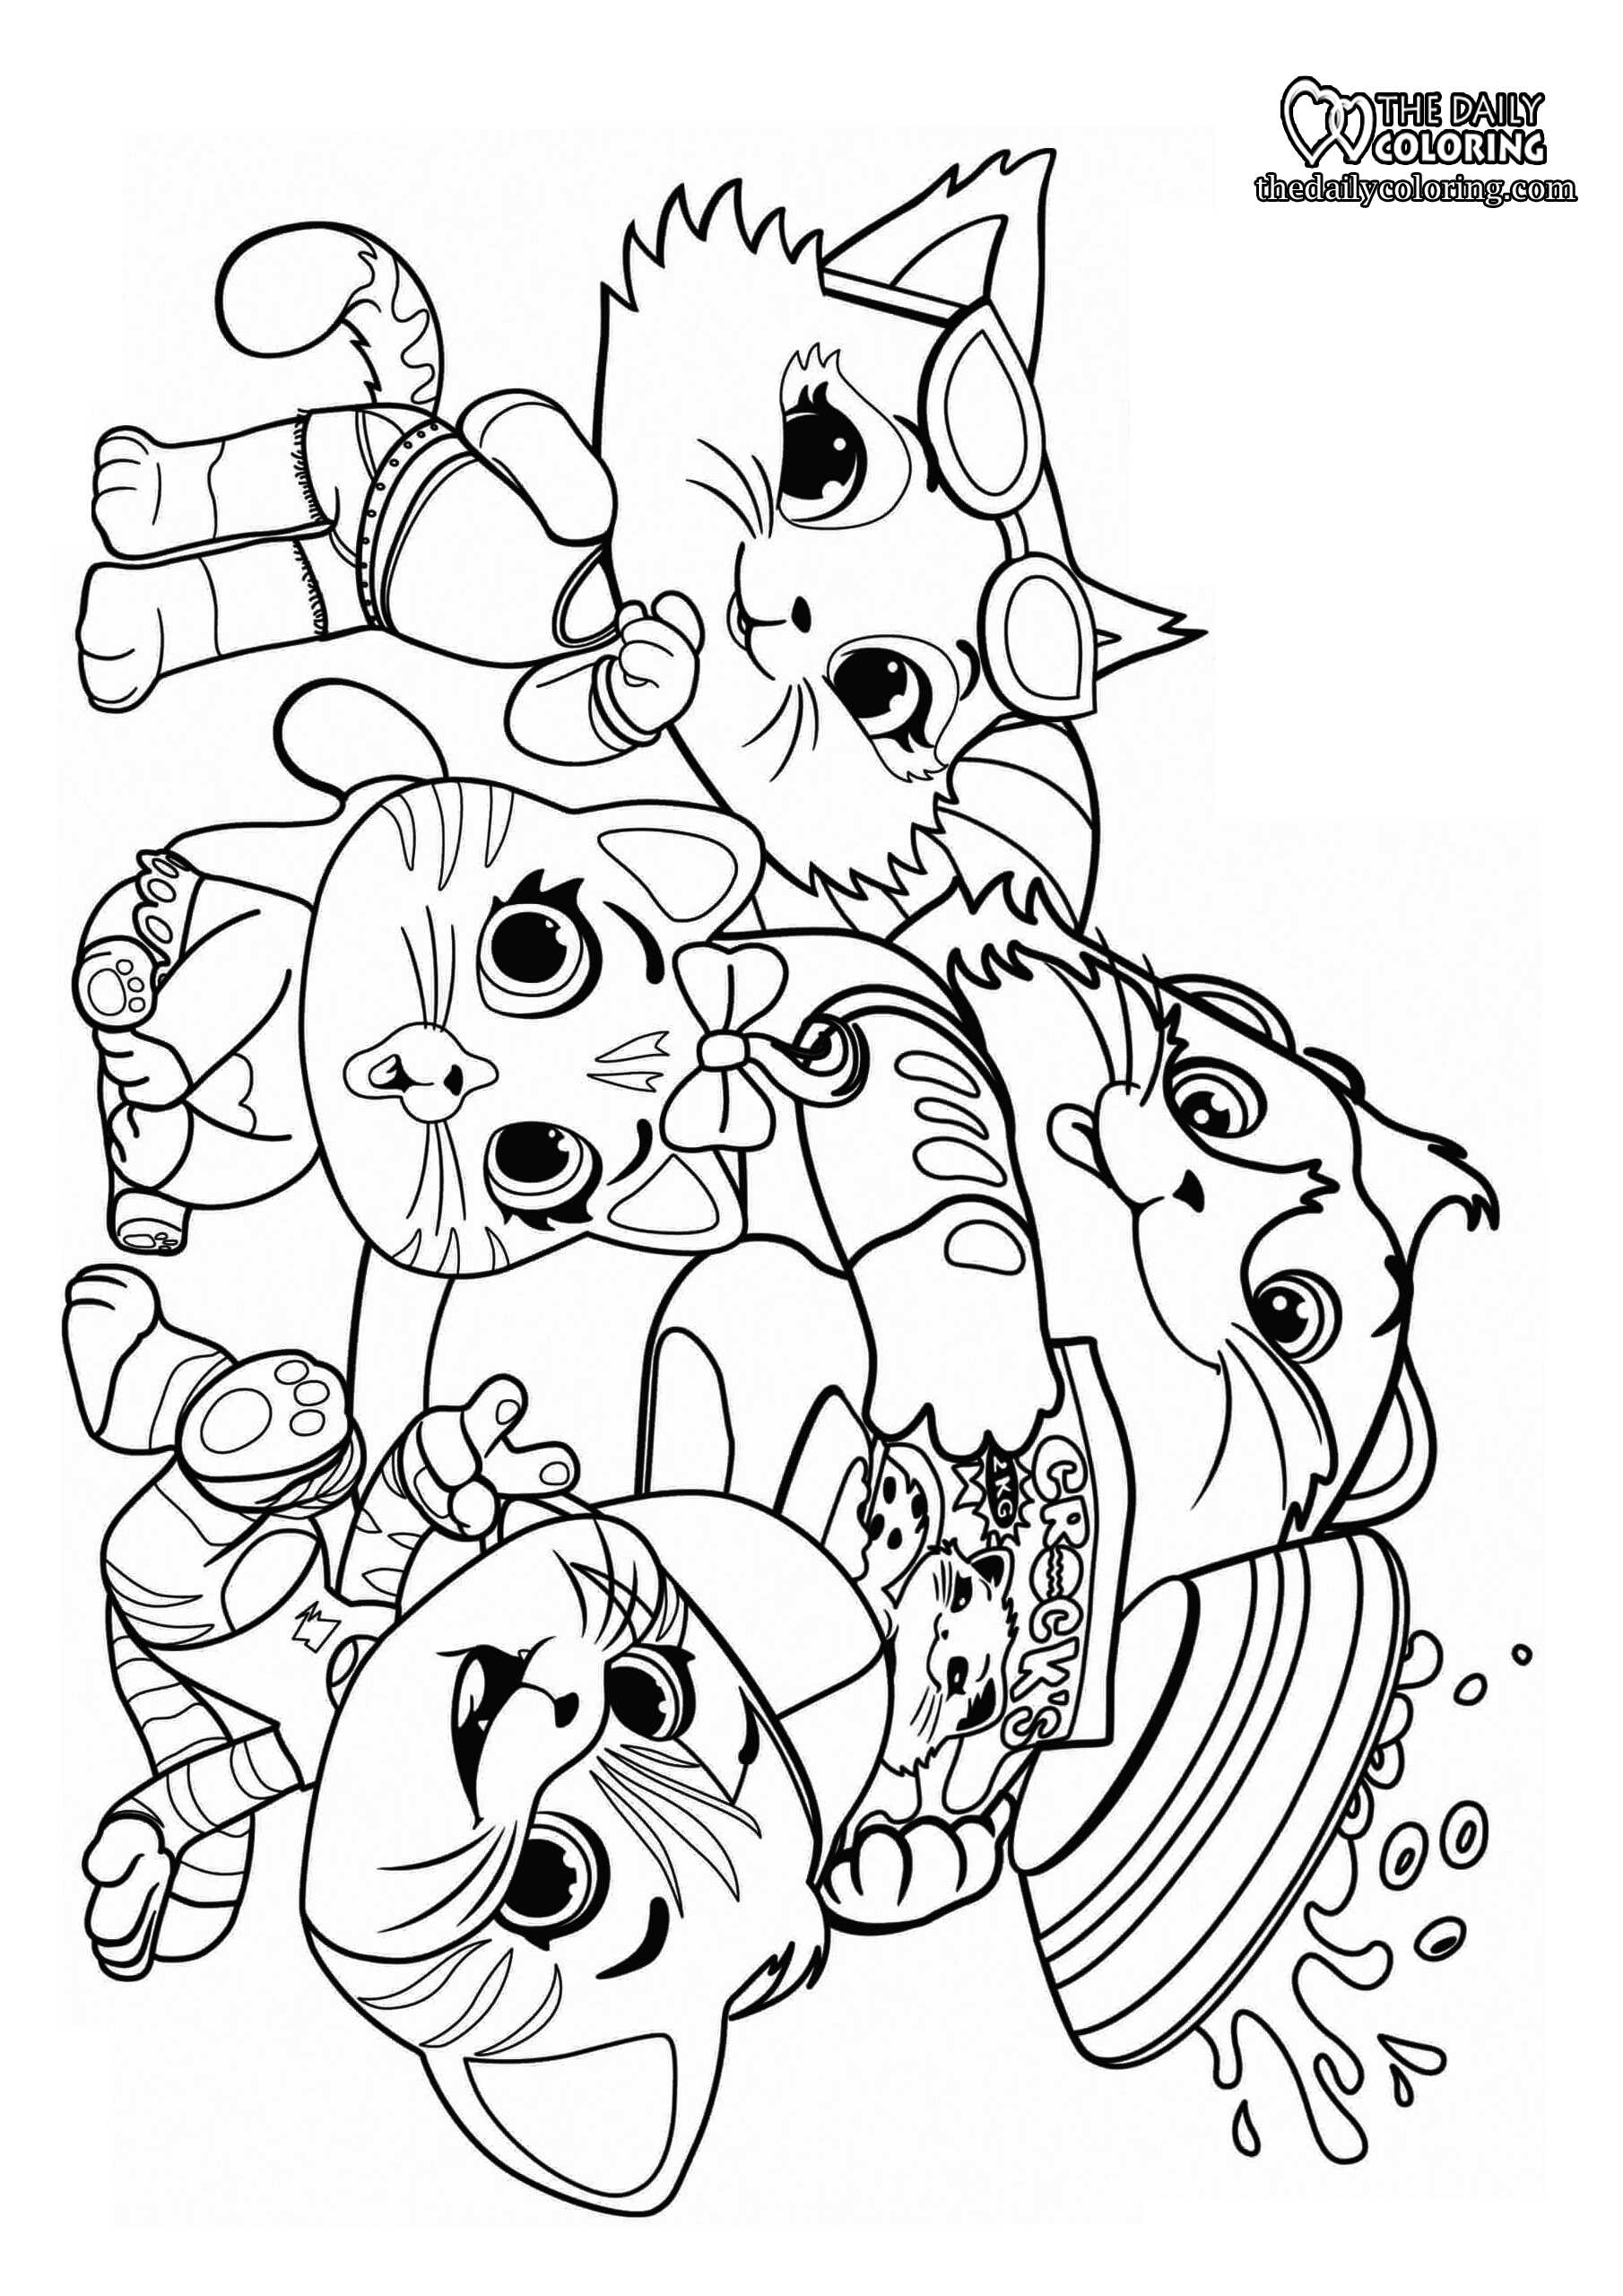 cat-family-coloring-page